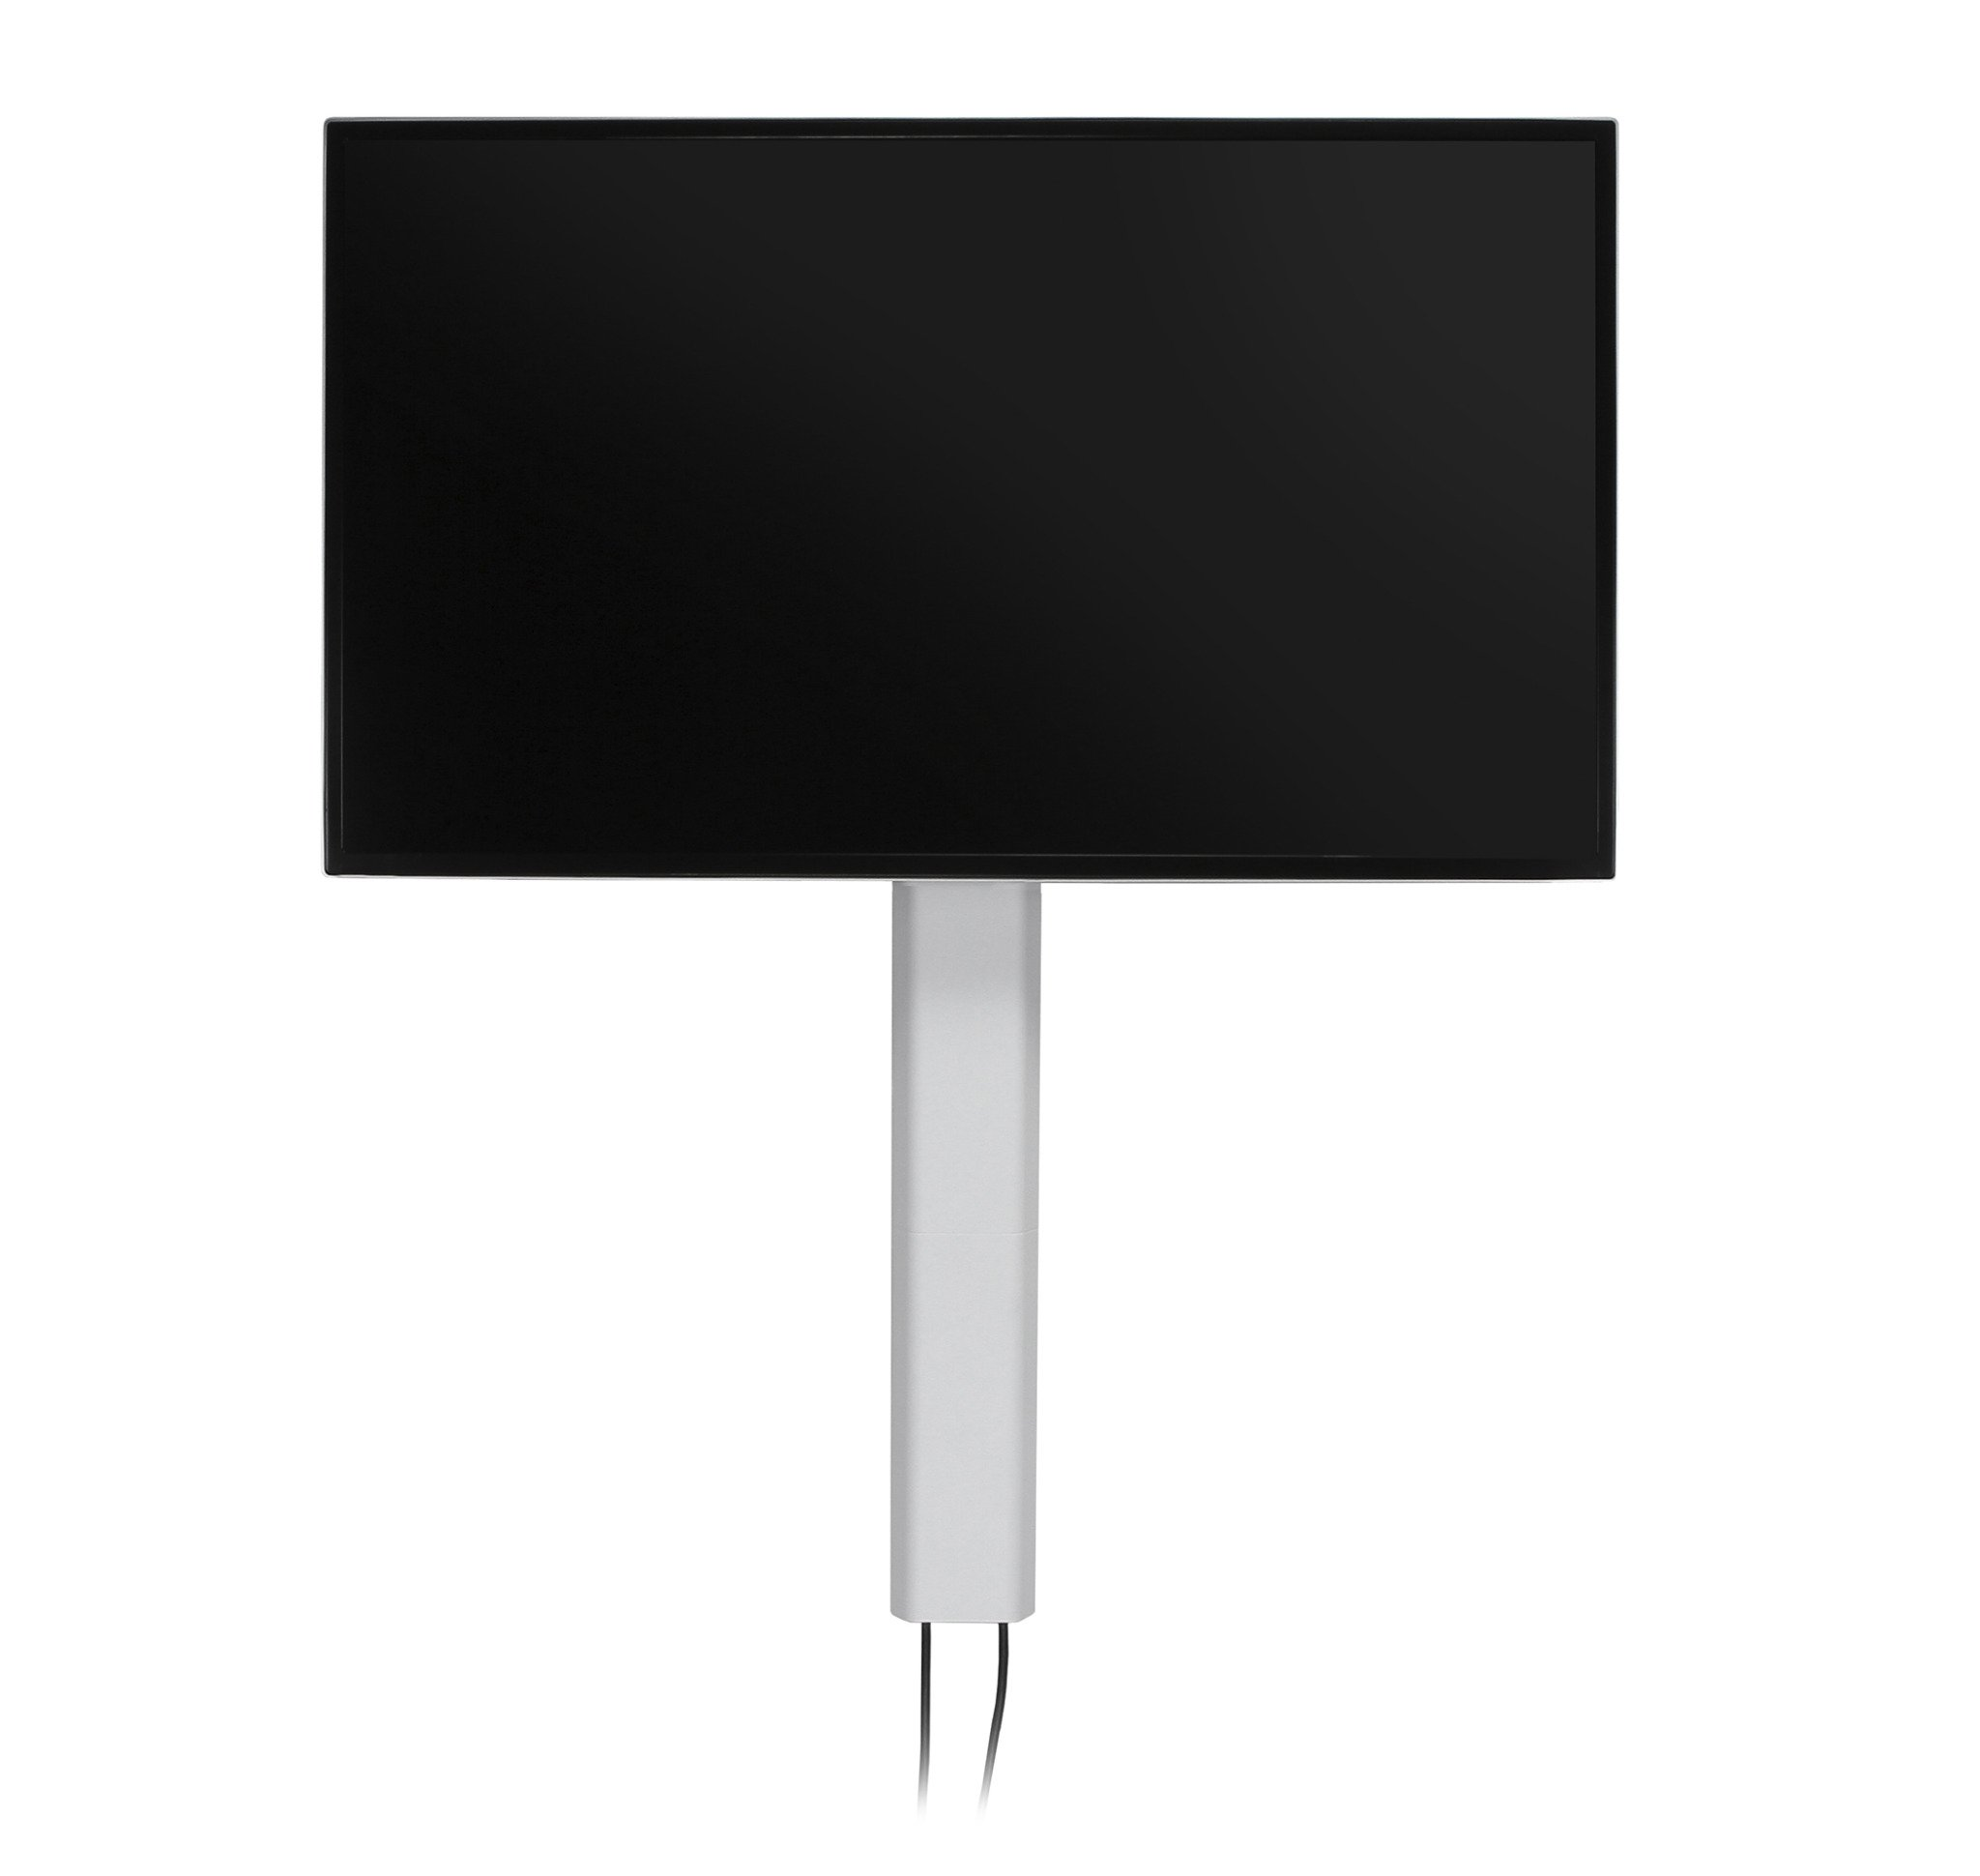 OmniMount OCM On-Wall Cable Management Covers, Paintable, Flat Design to Conceal up to 6 Cables, Set of Three, 3.25'' x 18'' Inches by OmniMount (Image #7)